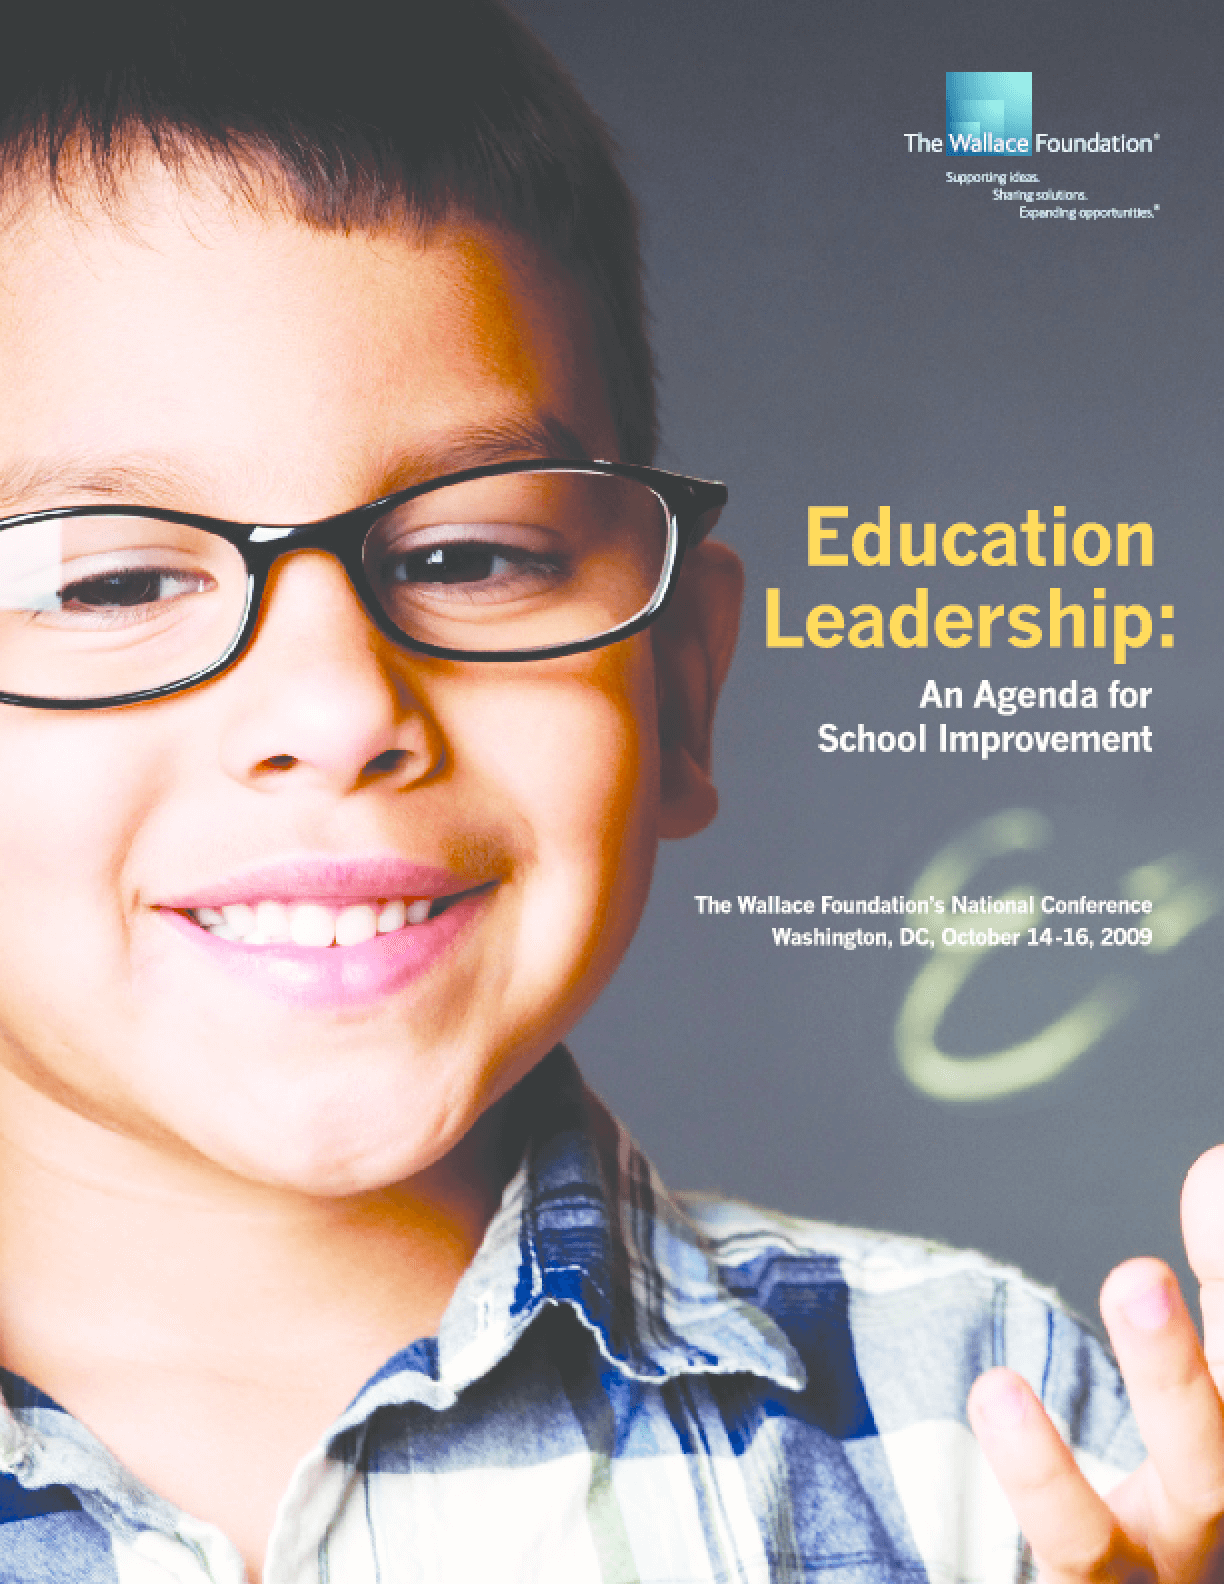 Education Leadership: An Agenda for School Improvement